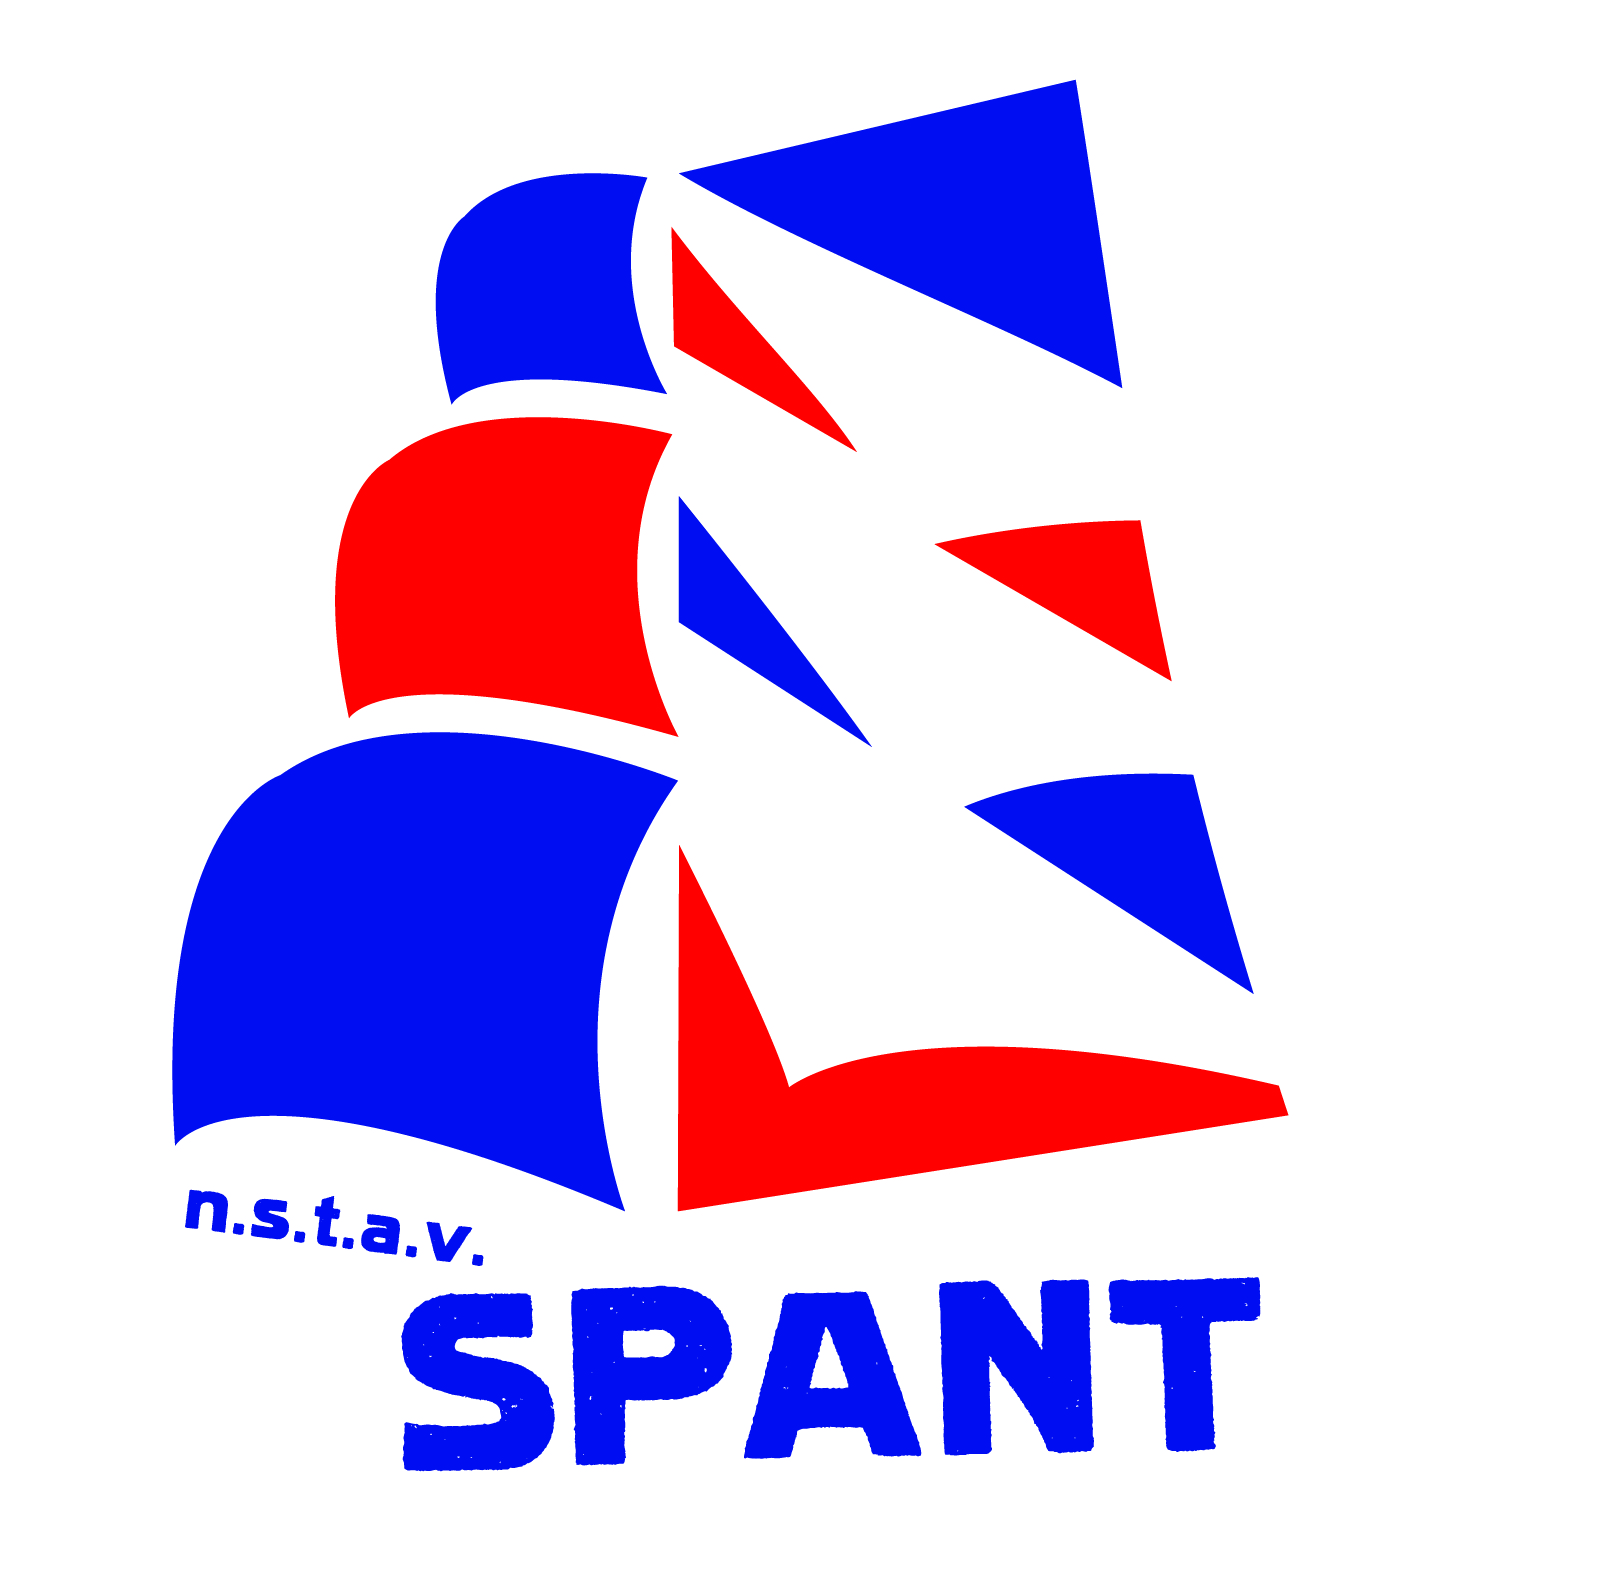 Logo of the SPANT organisation